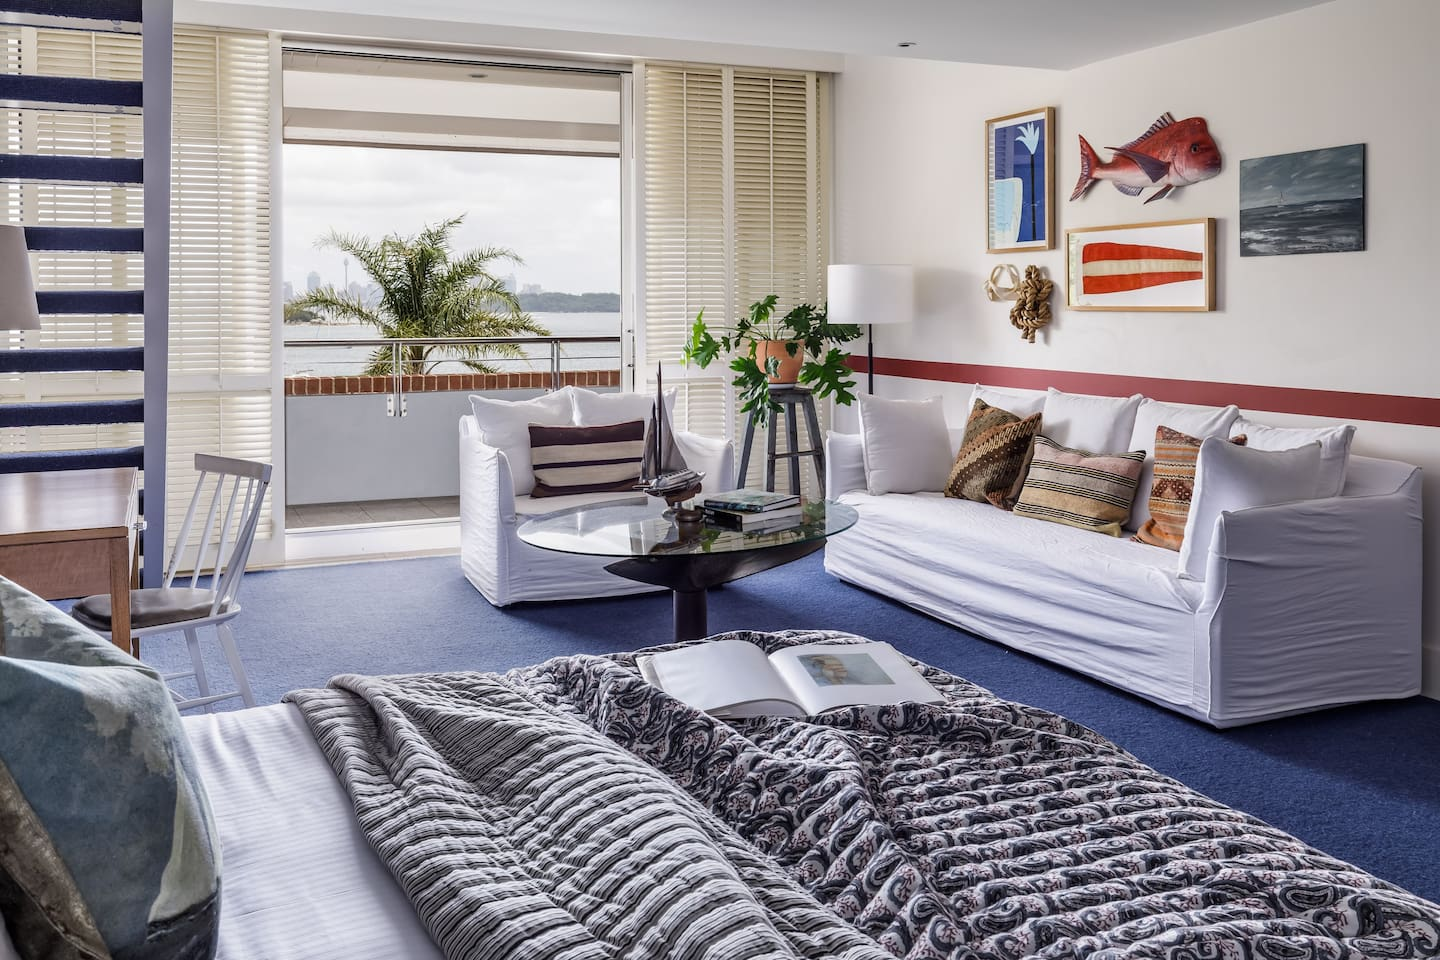 Harbour Loft Room with 1 King Bed & 2 Single Beds with sweeping harbour views